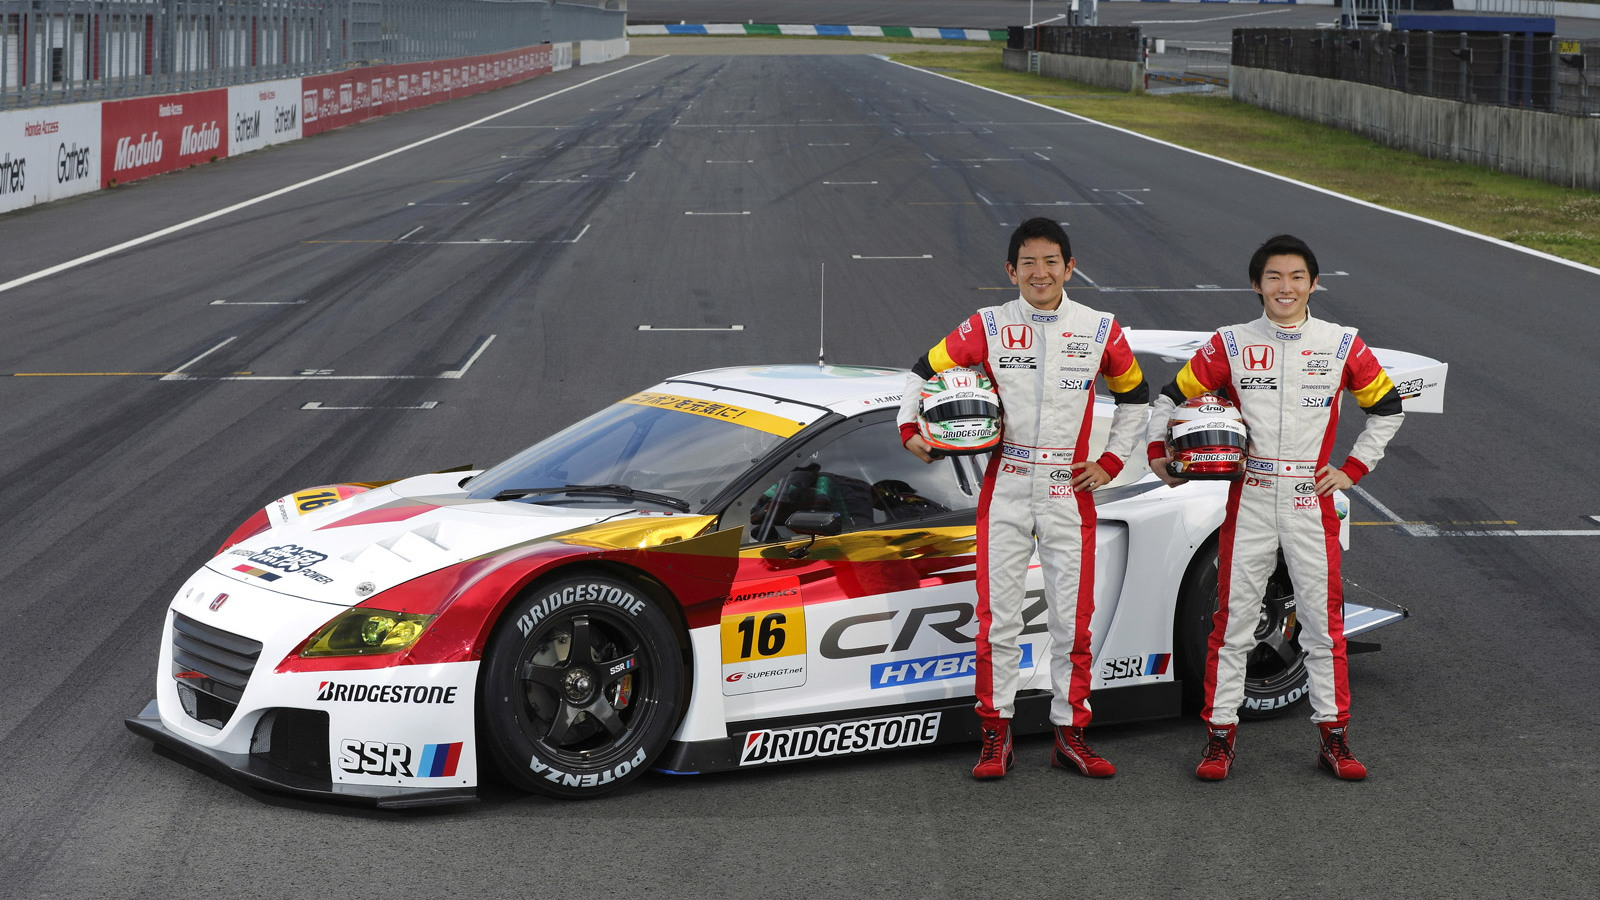 2012 Mugen CR-Z GT Super GT race car